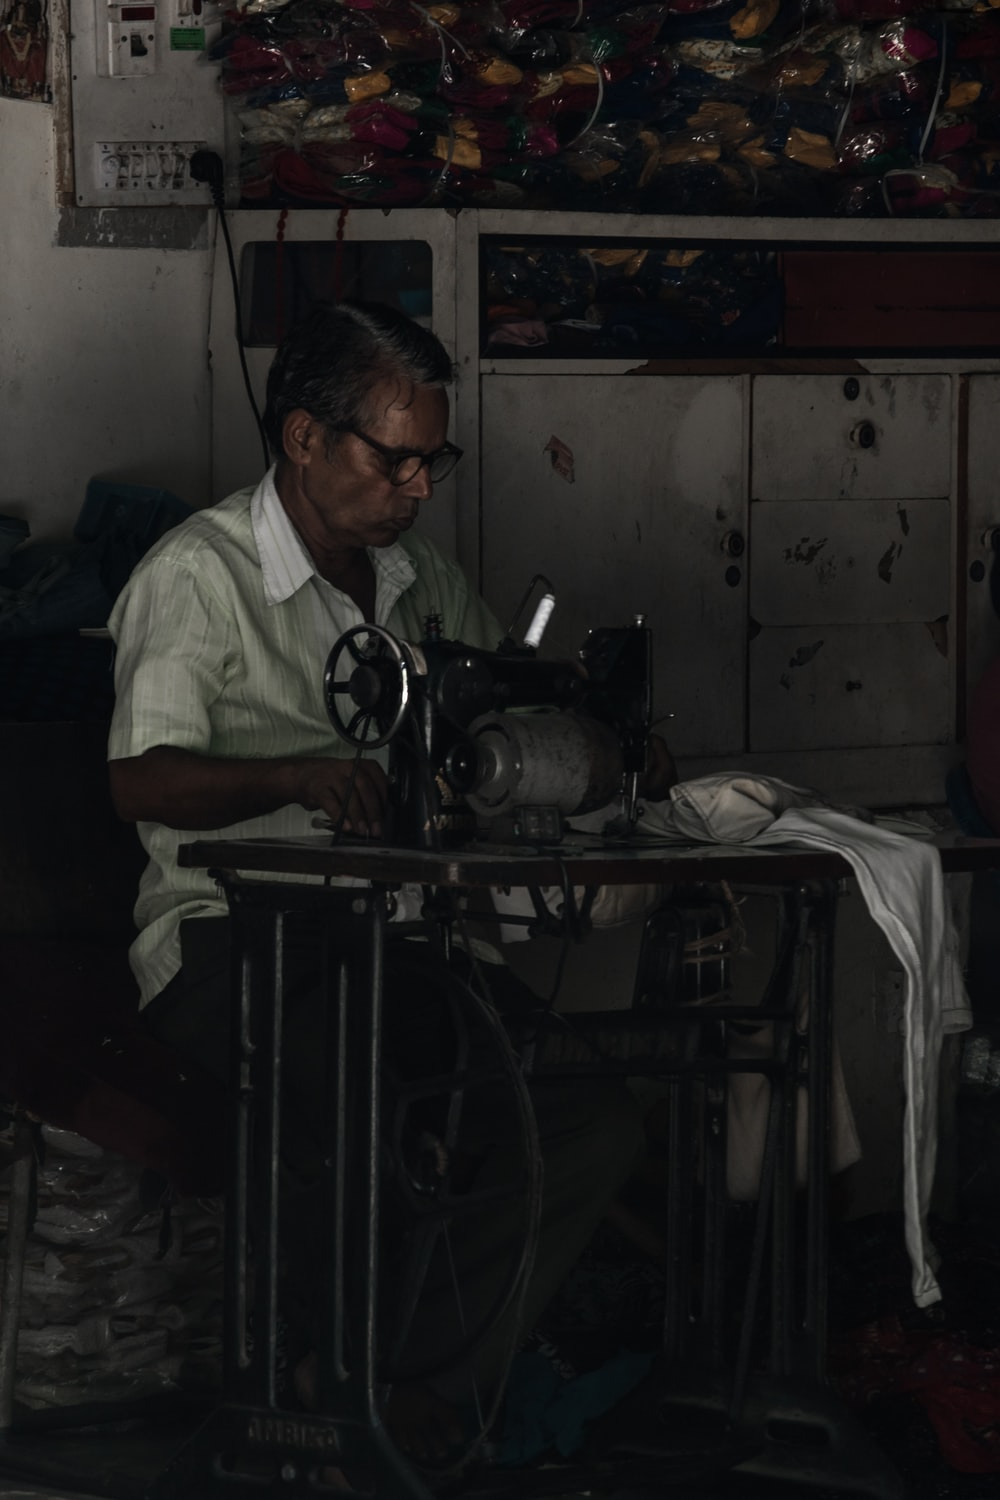 man sitting on chair working on sewing machine